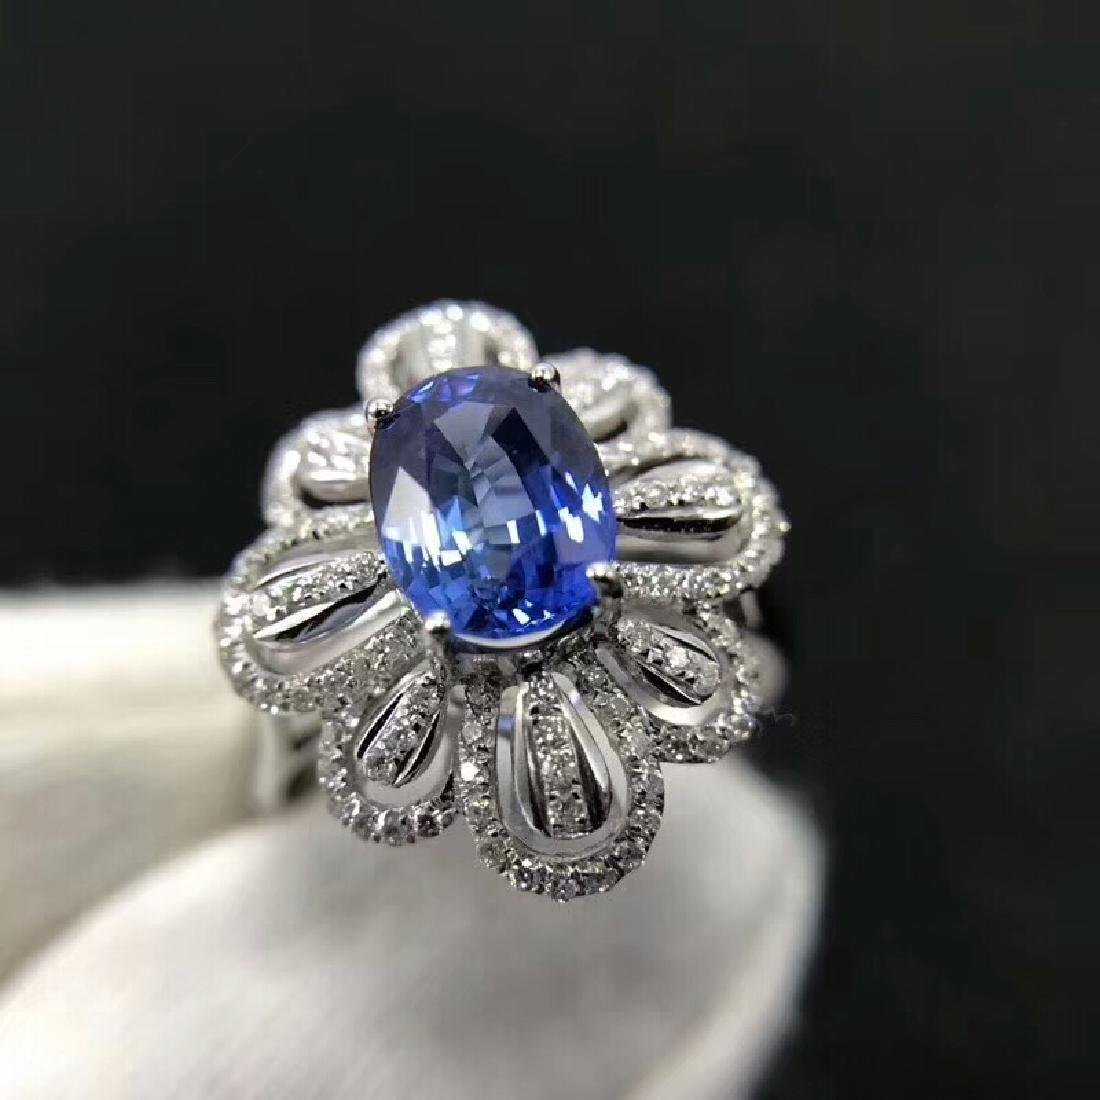 1.94ct Sapphire Ring in 18kt White Gold - 4